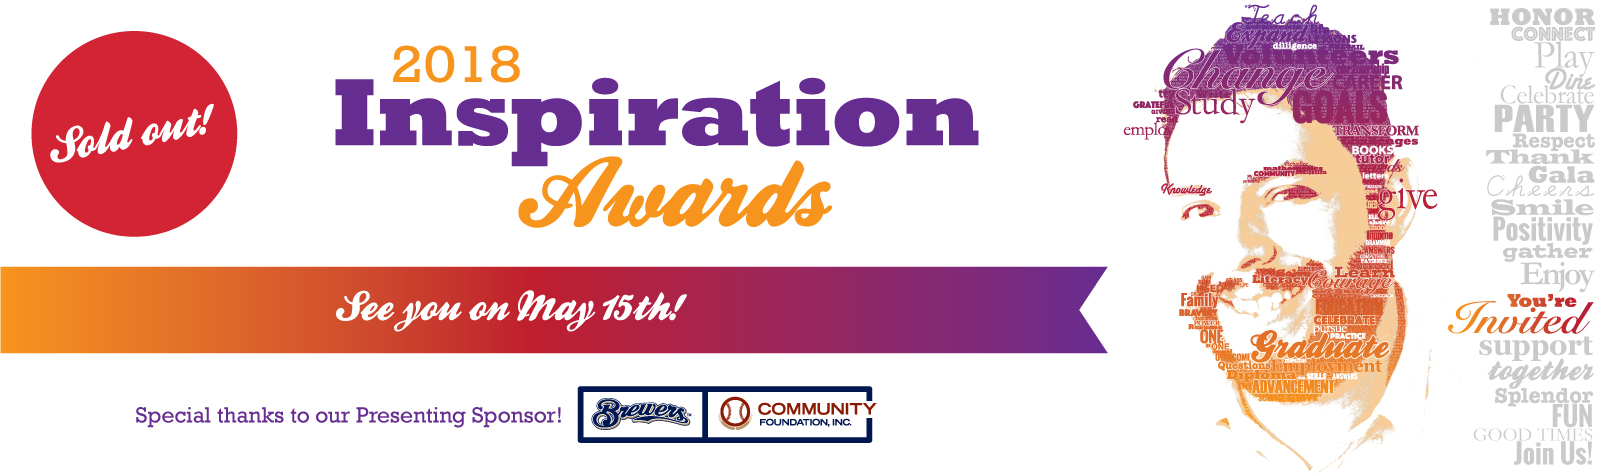 2018 Inspiration Awards - You're invited!